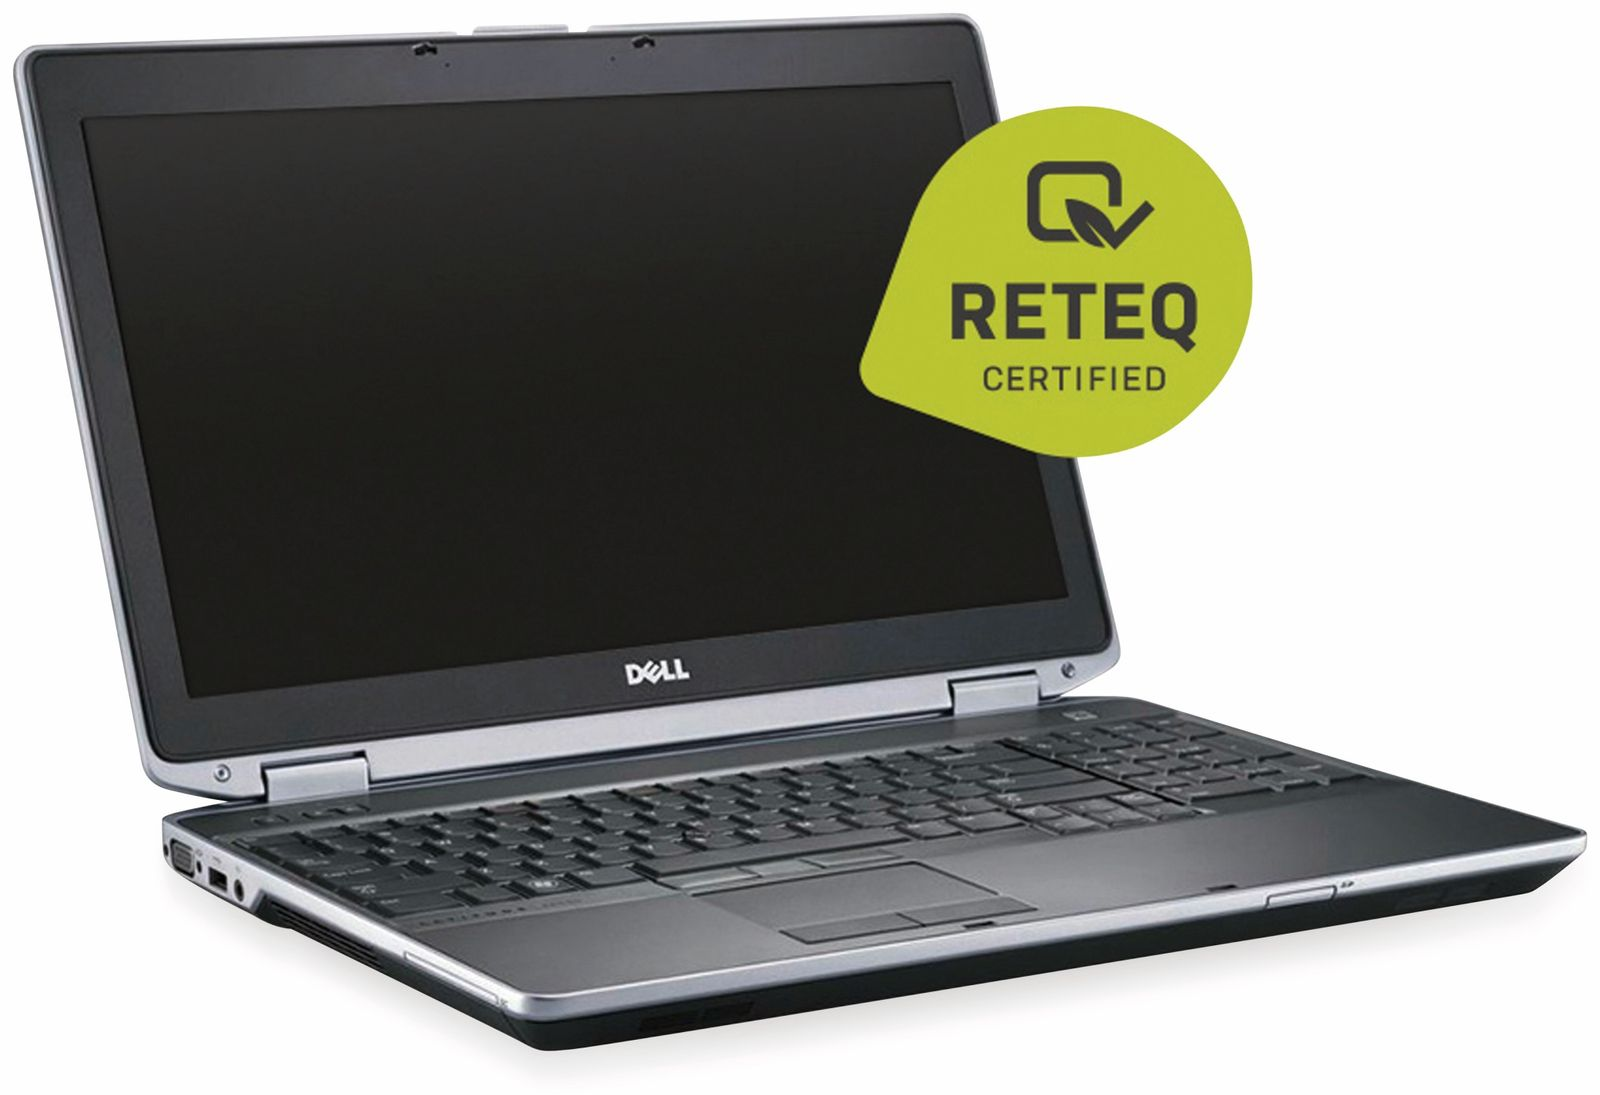 Laptop Online Kaufen Refurbished Laptops Notebooks Günstig Online Kaufen